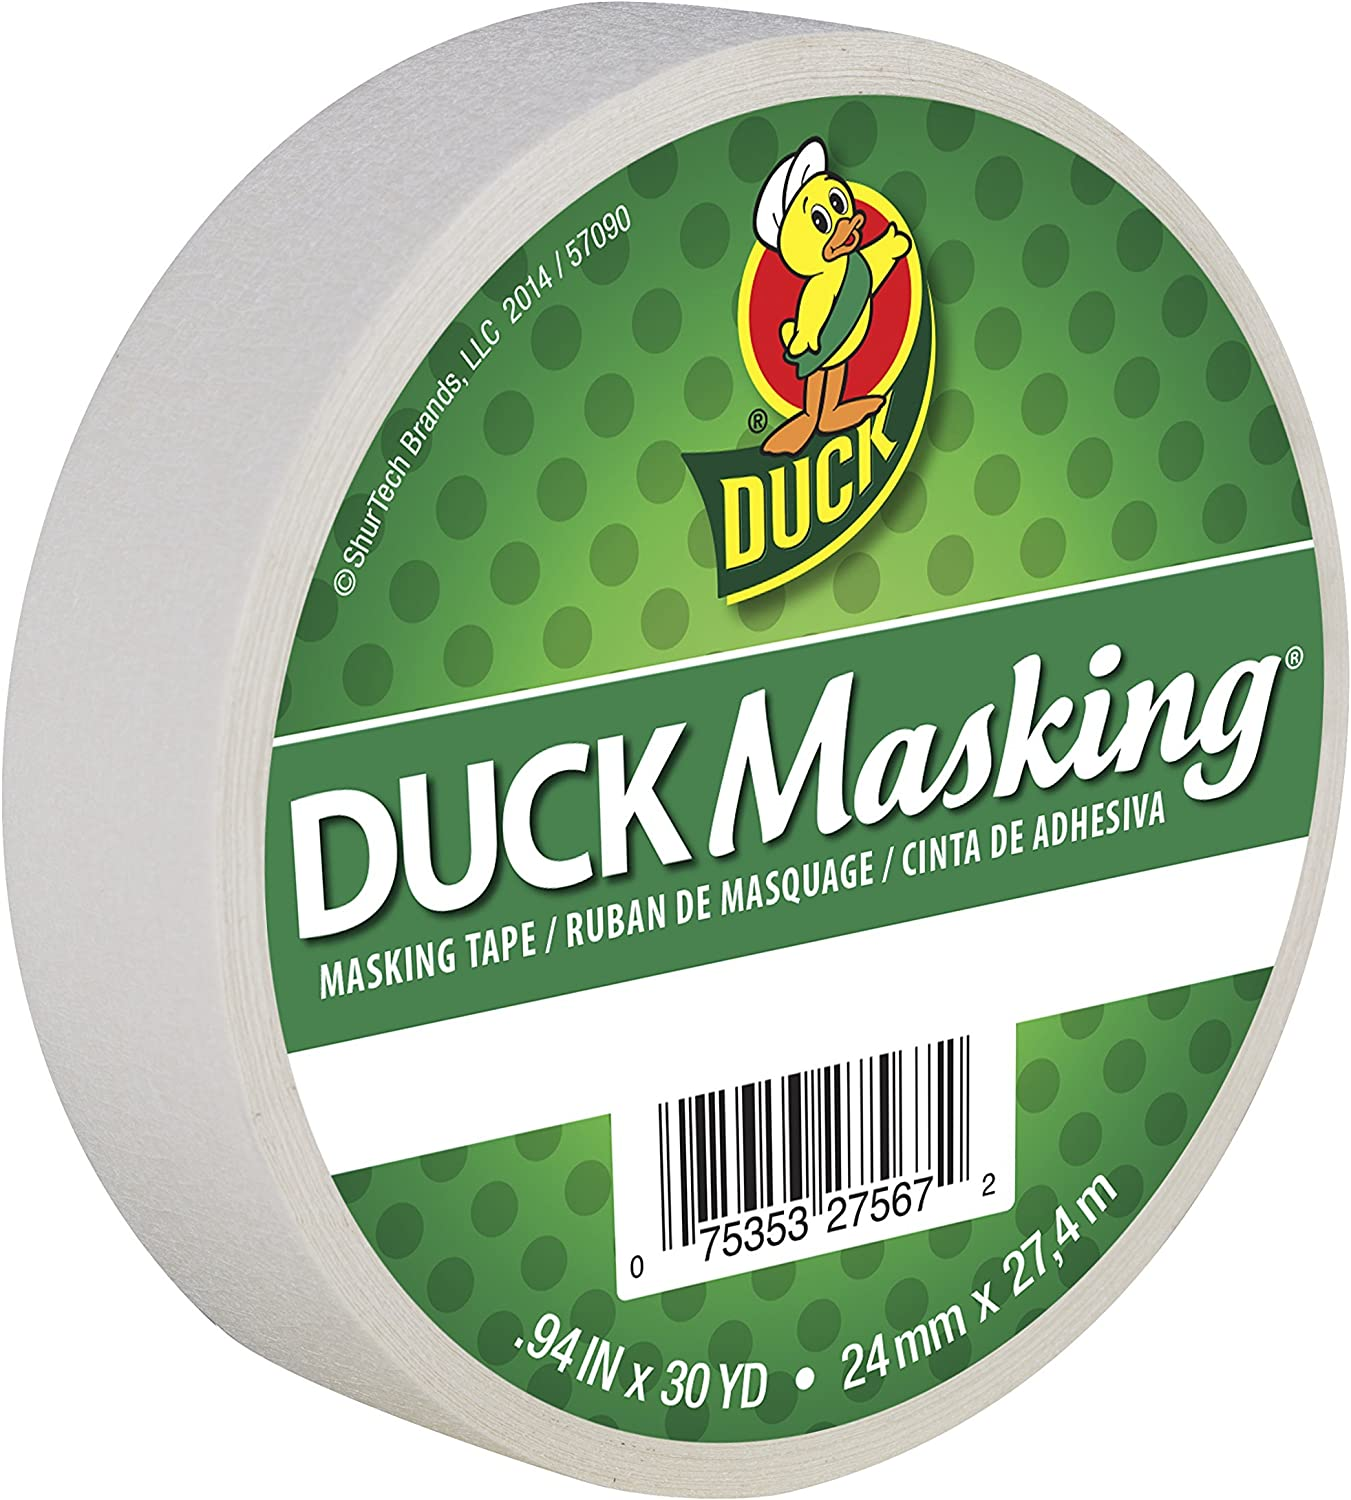 Duck Masking Special price Regular discount for a limited time 240878 White Color Yards Tape.94-Inch by 30